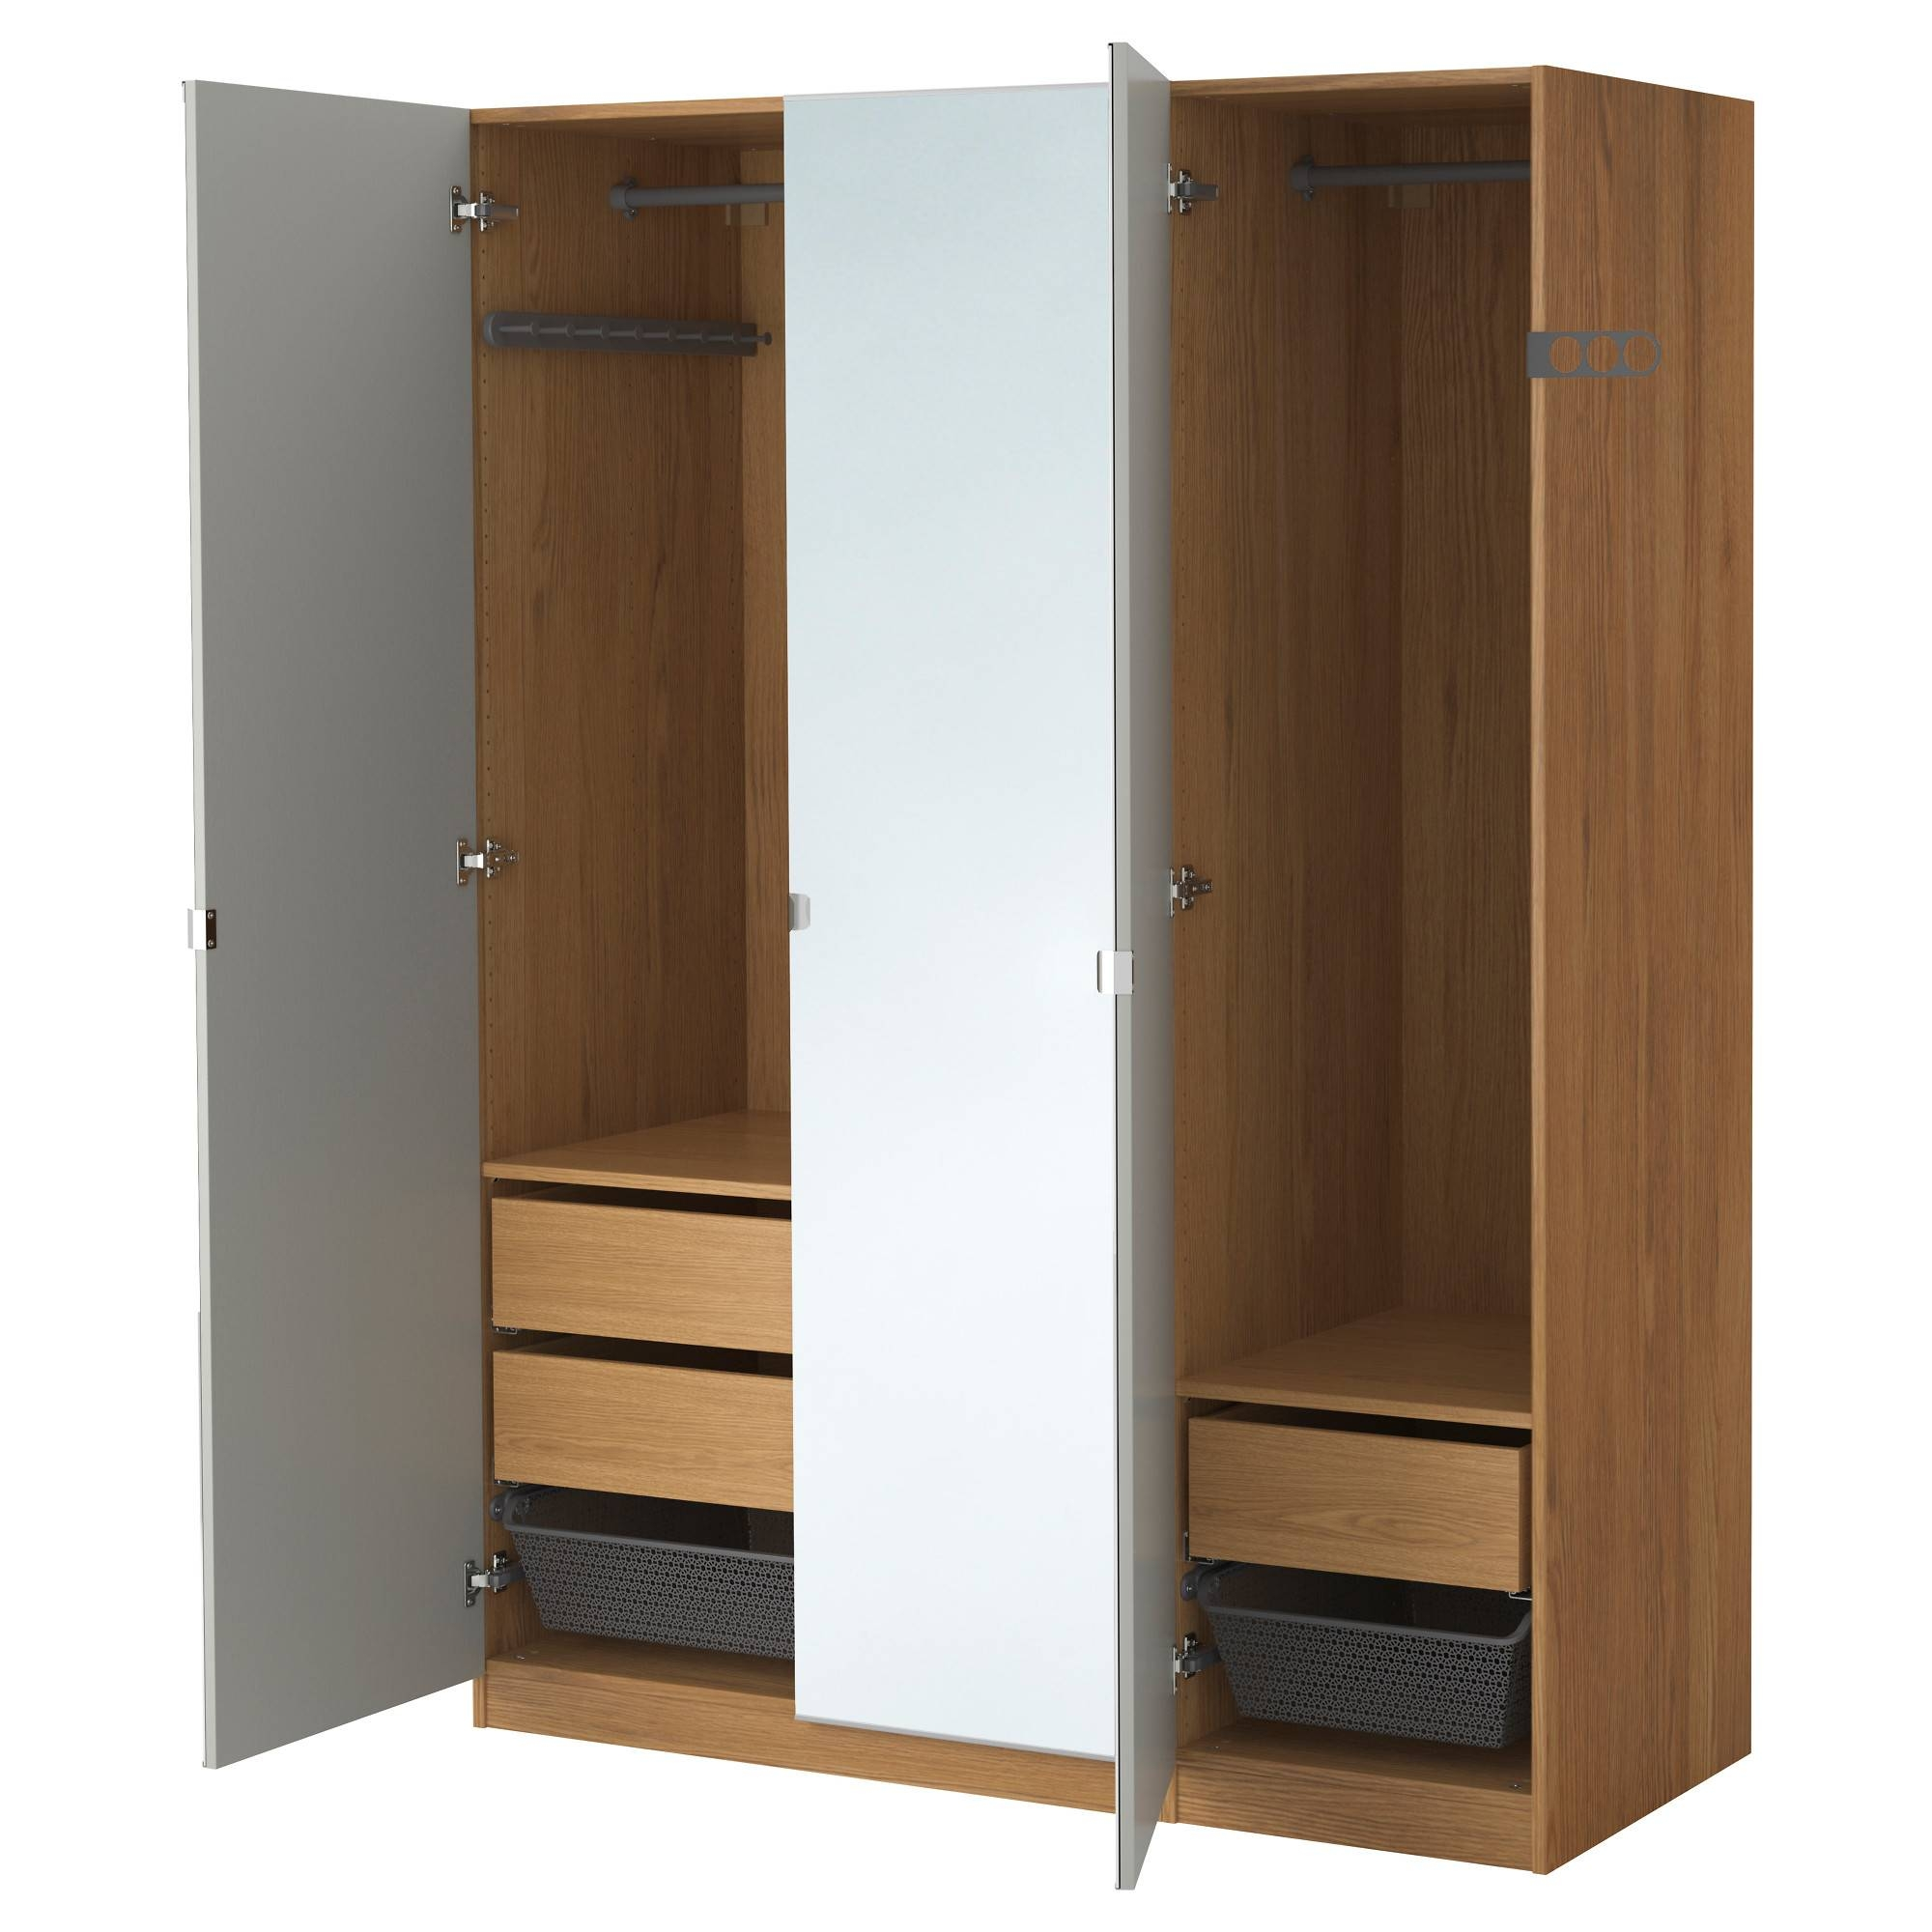 Wardrobes | Ikea throughout 1 Door Mirrored Wardrobes (Image 12 of 15)